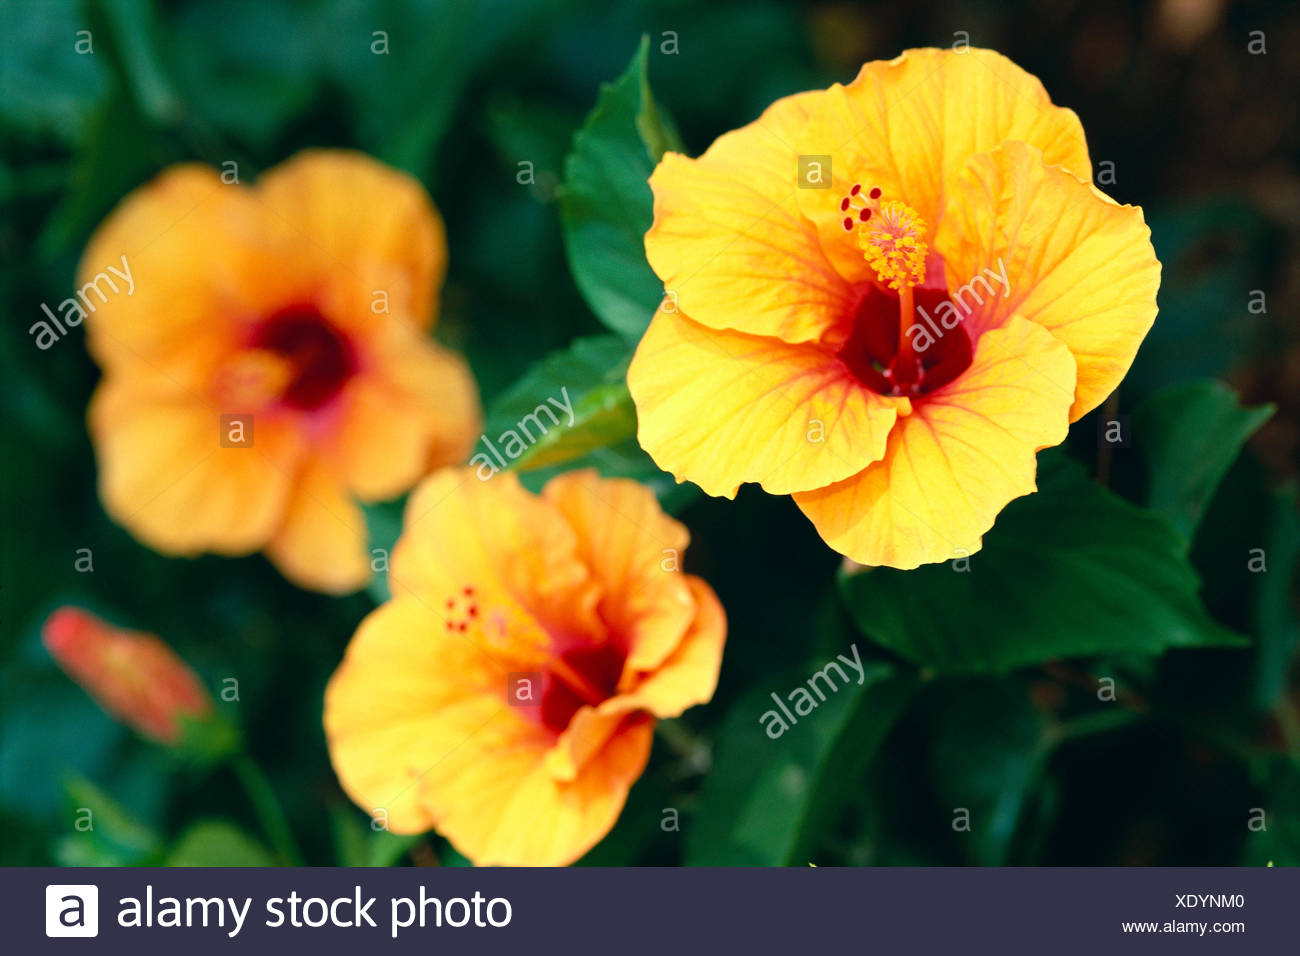 Three Orange Yellow Hibiscus Flower With Dark Red Center On Bush